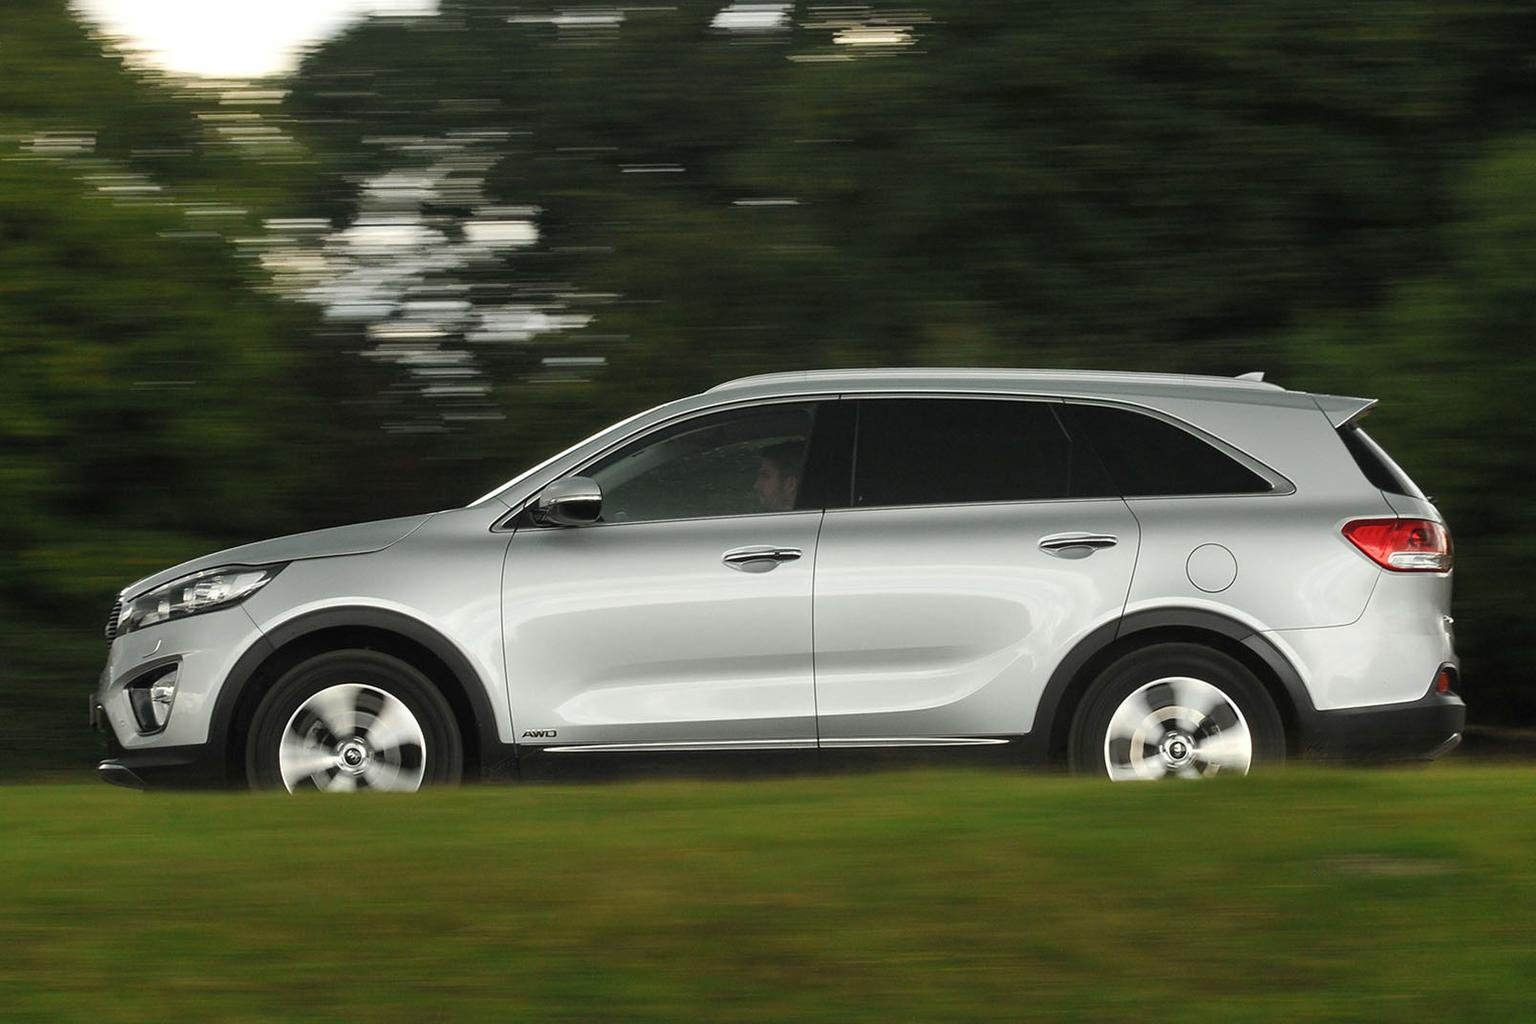 New Ford Edge vs Kia Sorento